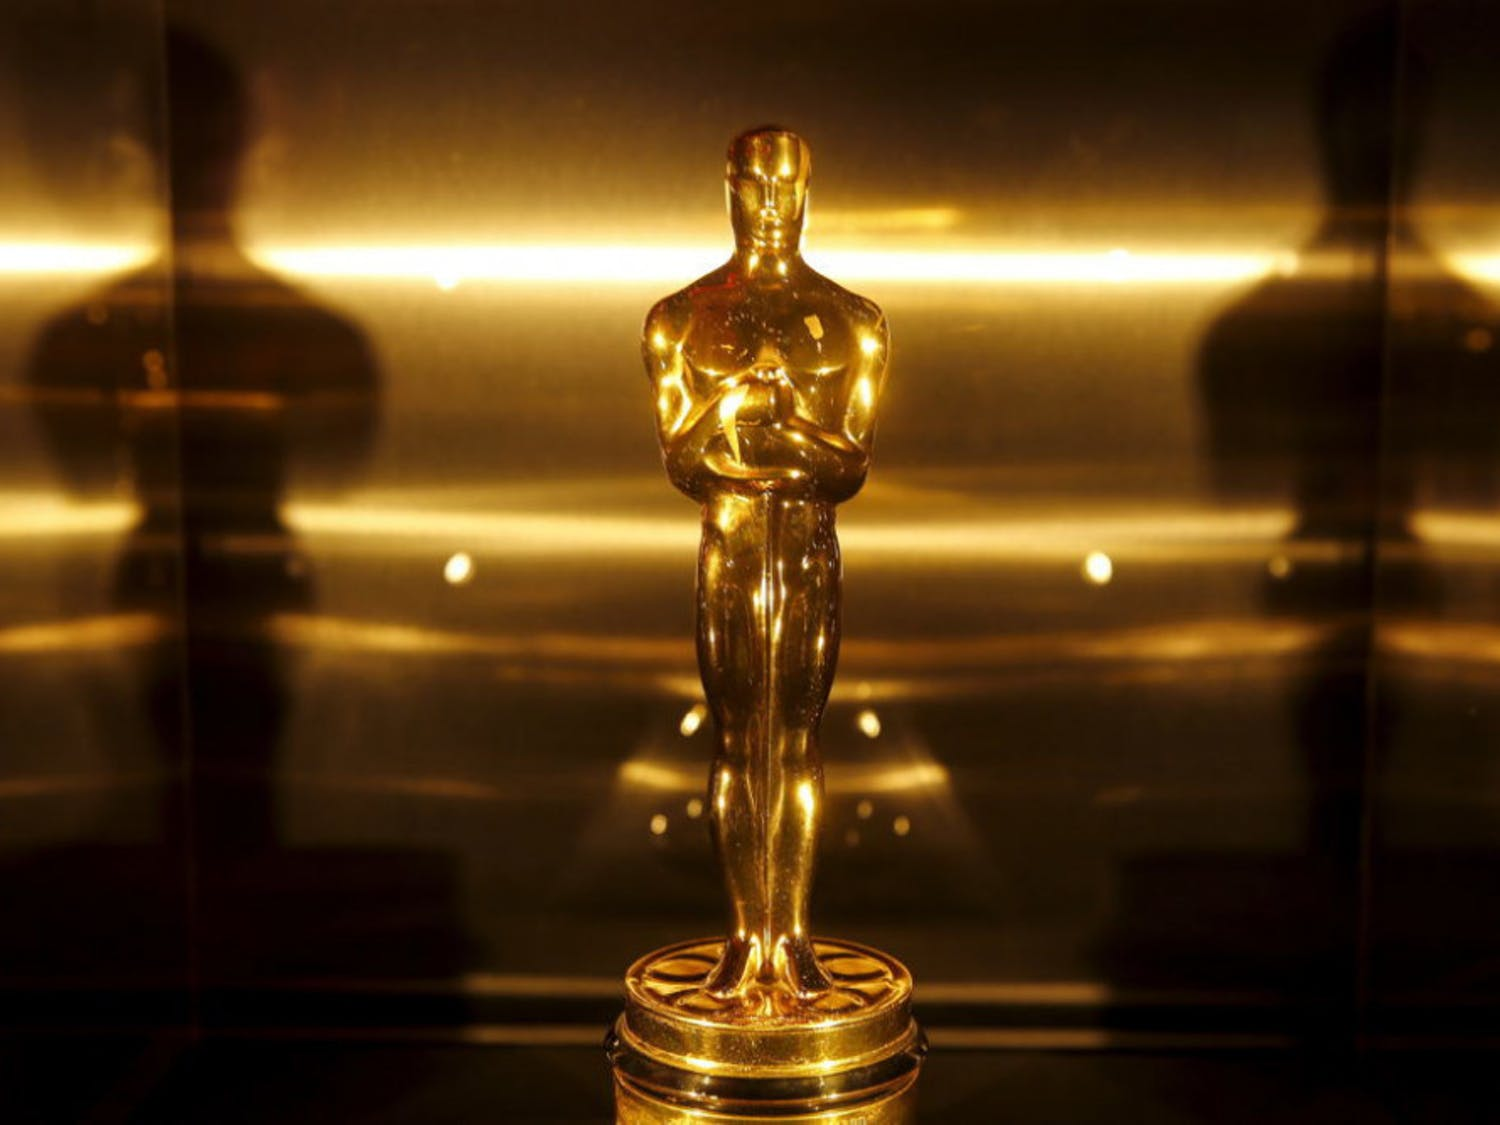 The 91st Academy Awards will air Sunday Feb. 24 at 8 p.m.